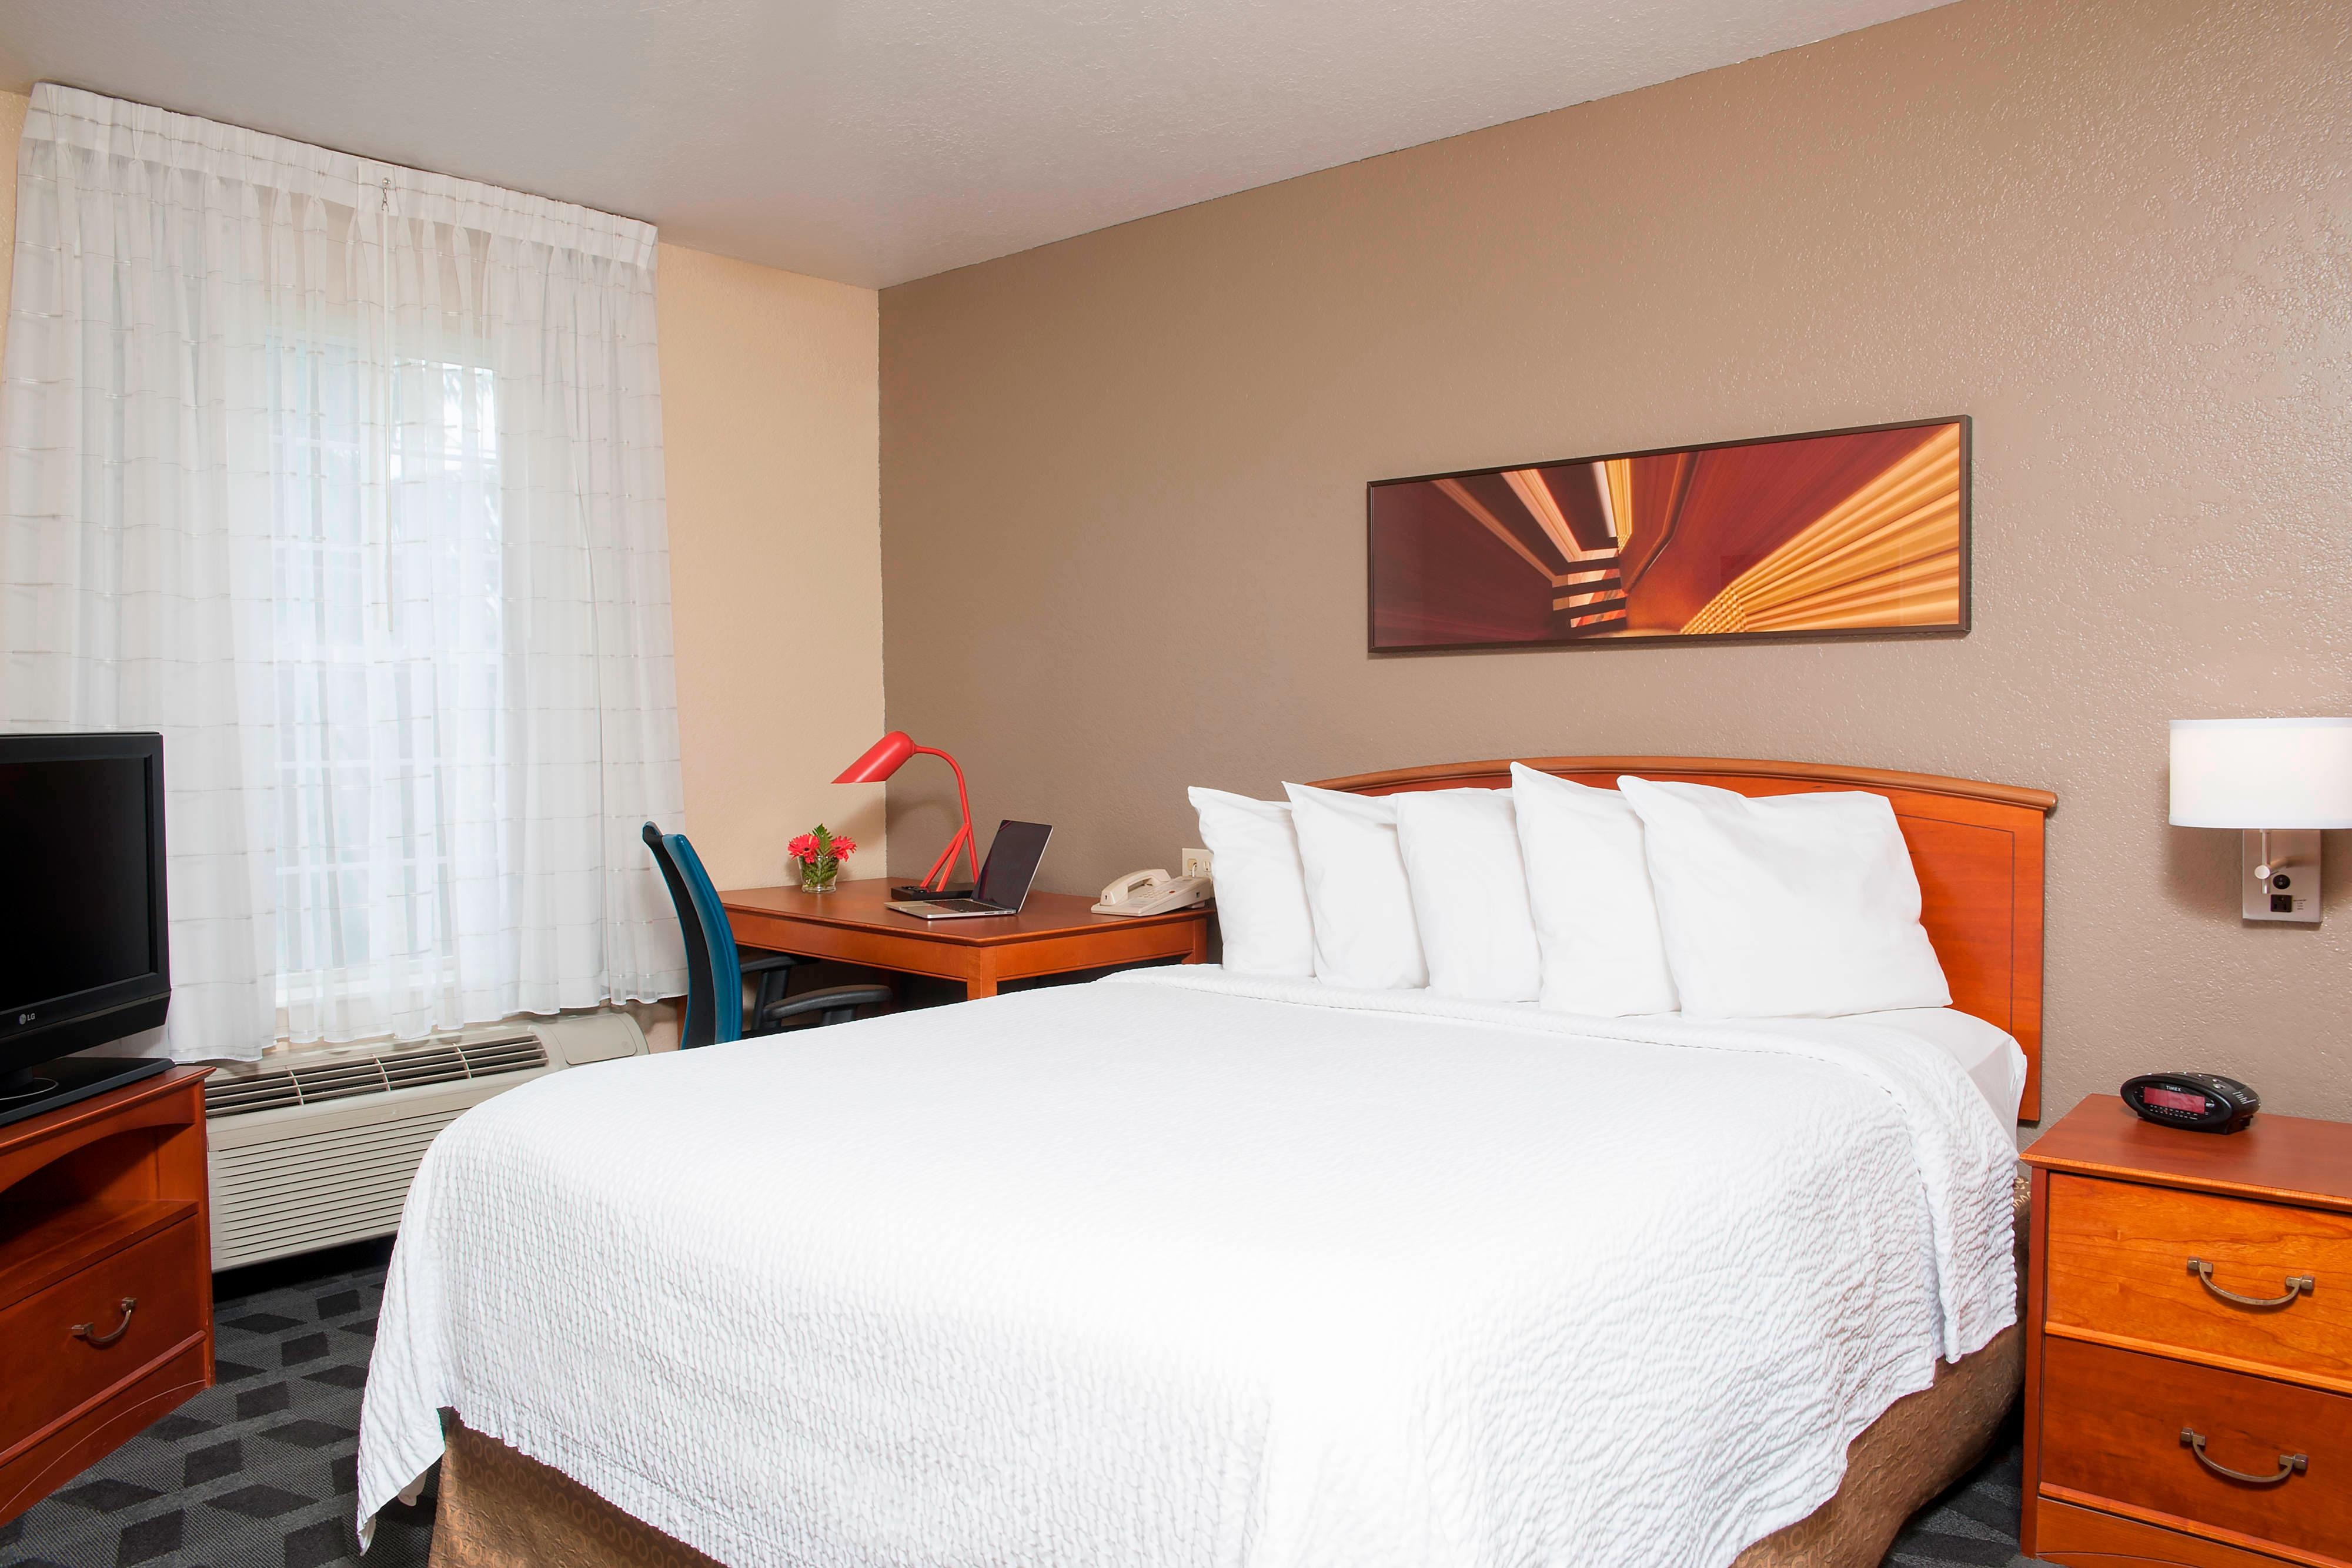 Indianapolis Hotels Towneplace Suites Keystone View Guest Room Details